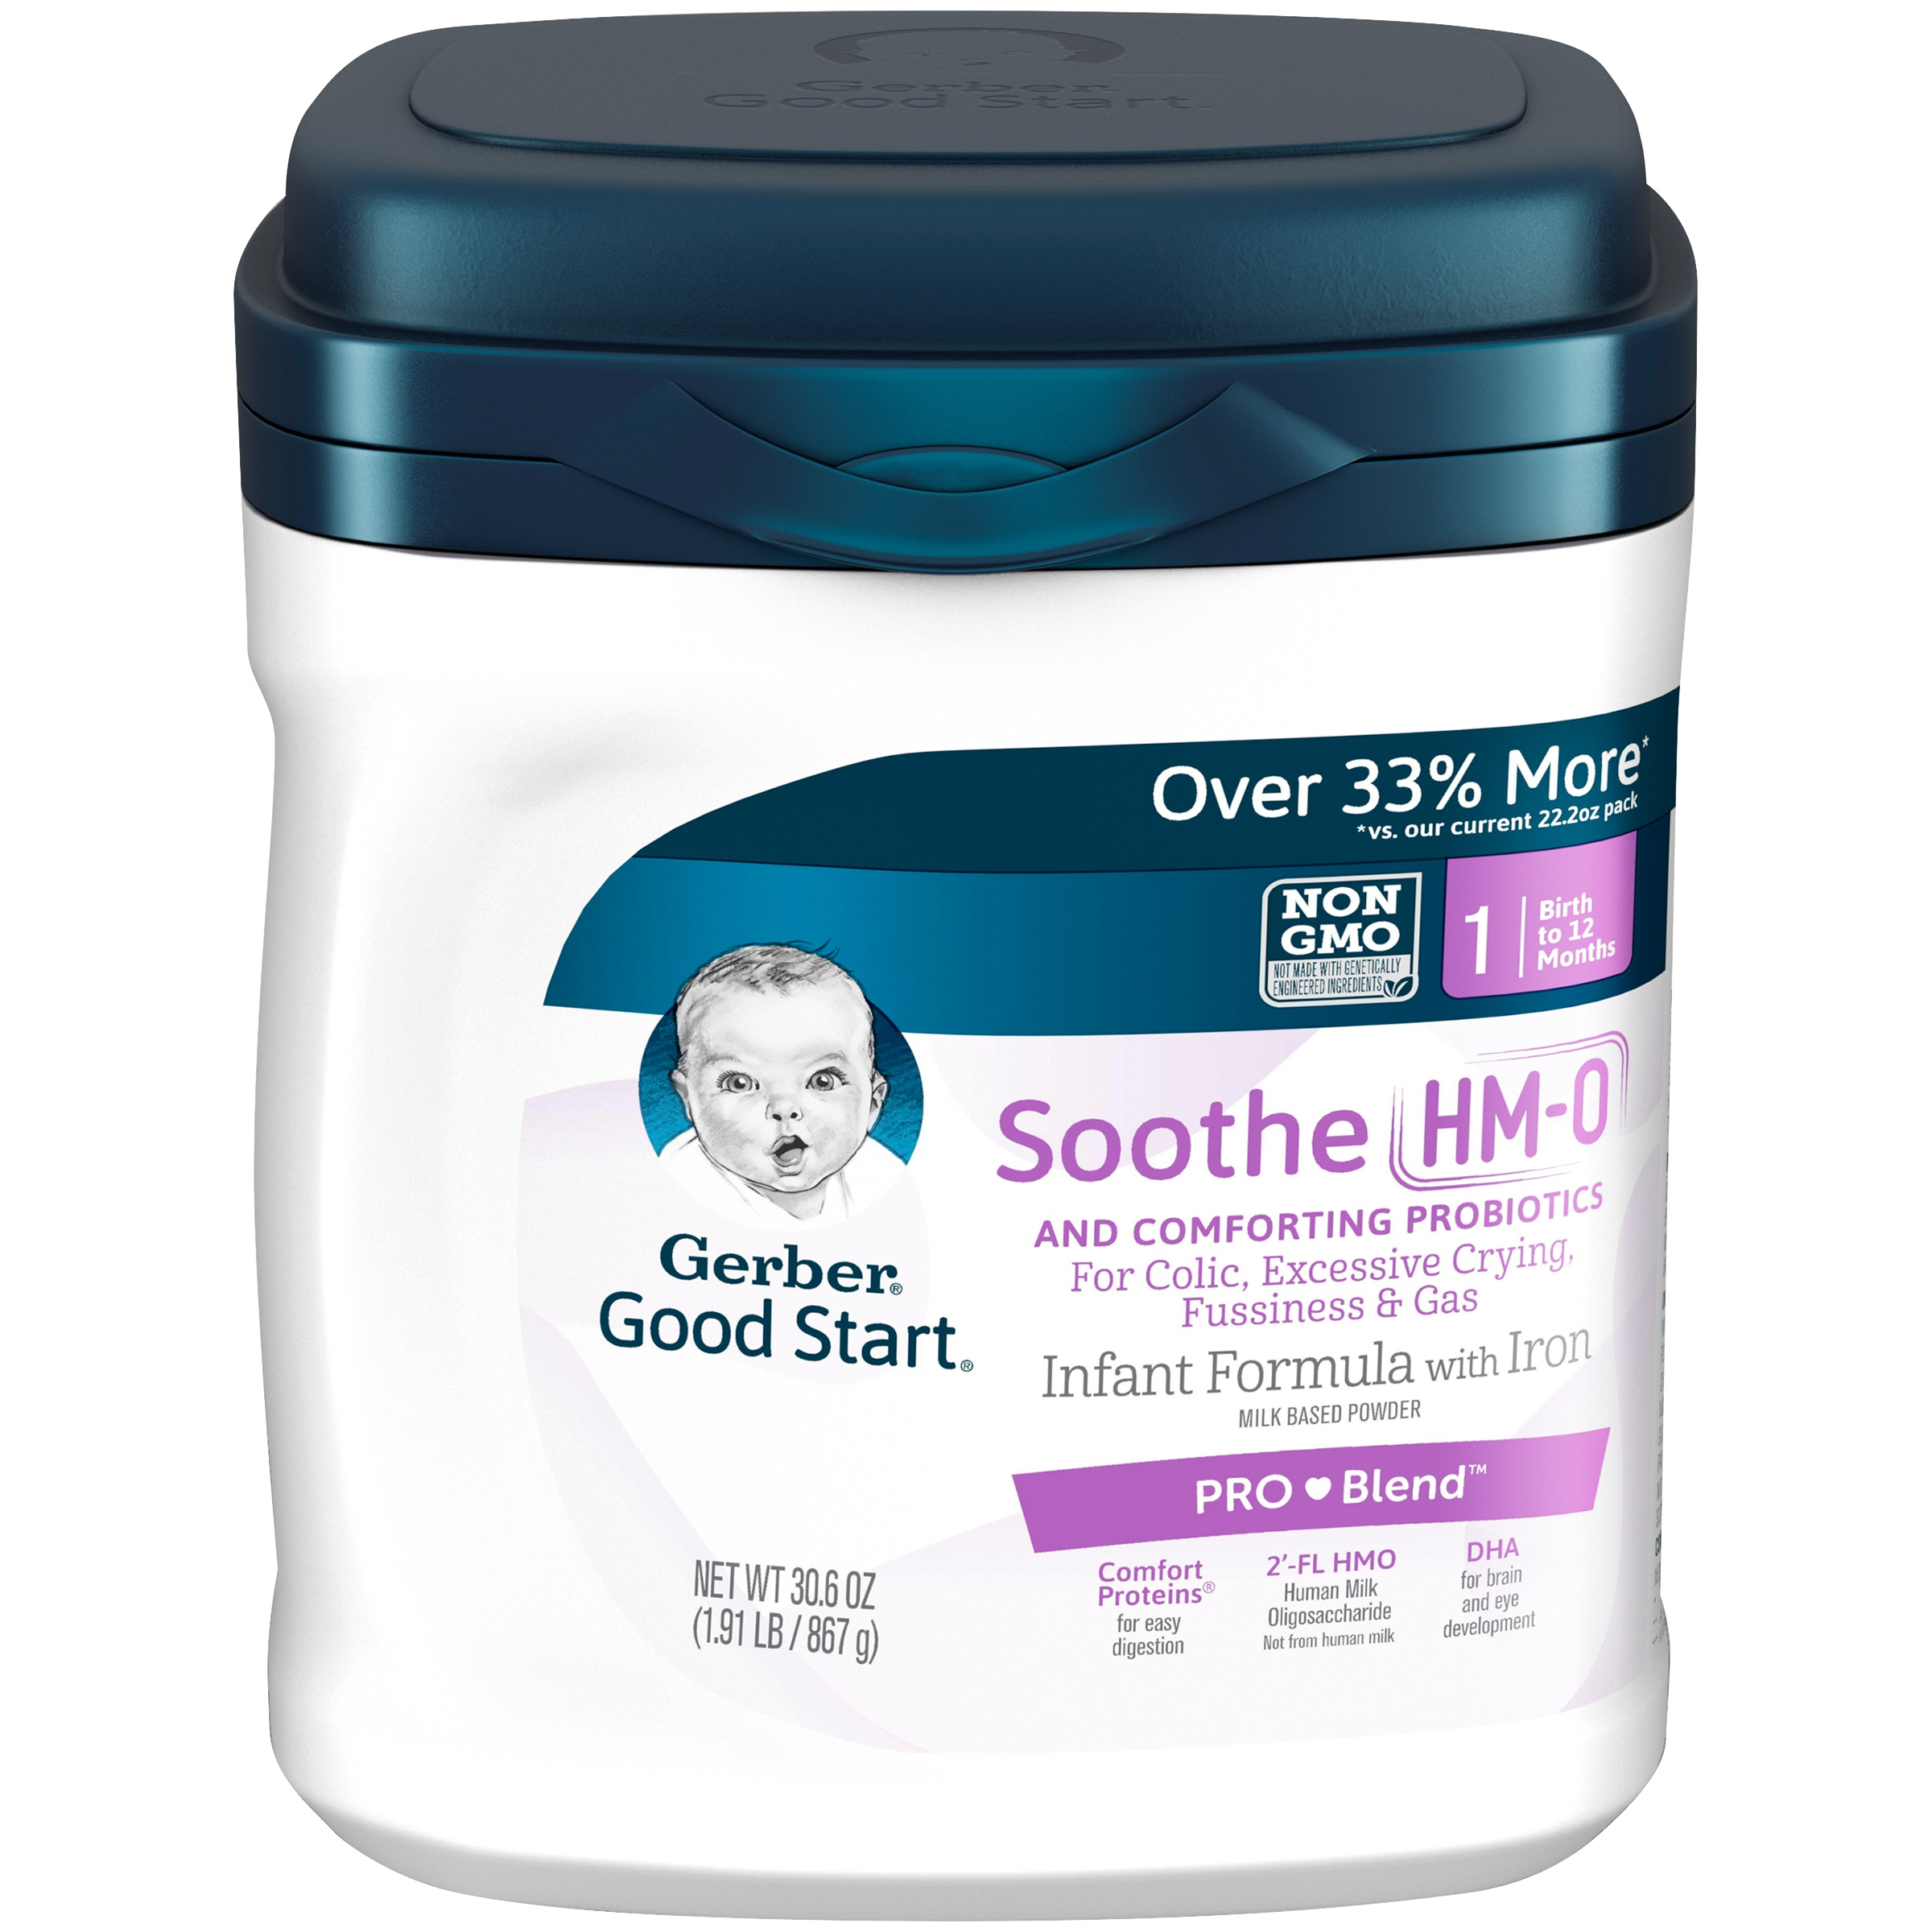 Gerber Good Start Soothe (HMO) Non-GMO Powder Infant Formula, Stage 1, 30.6 oz (Pack of 4)